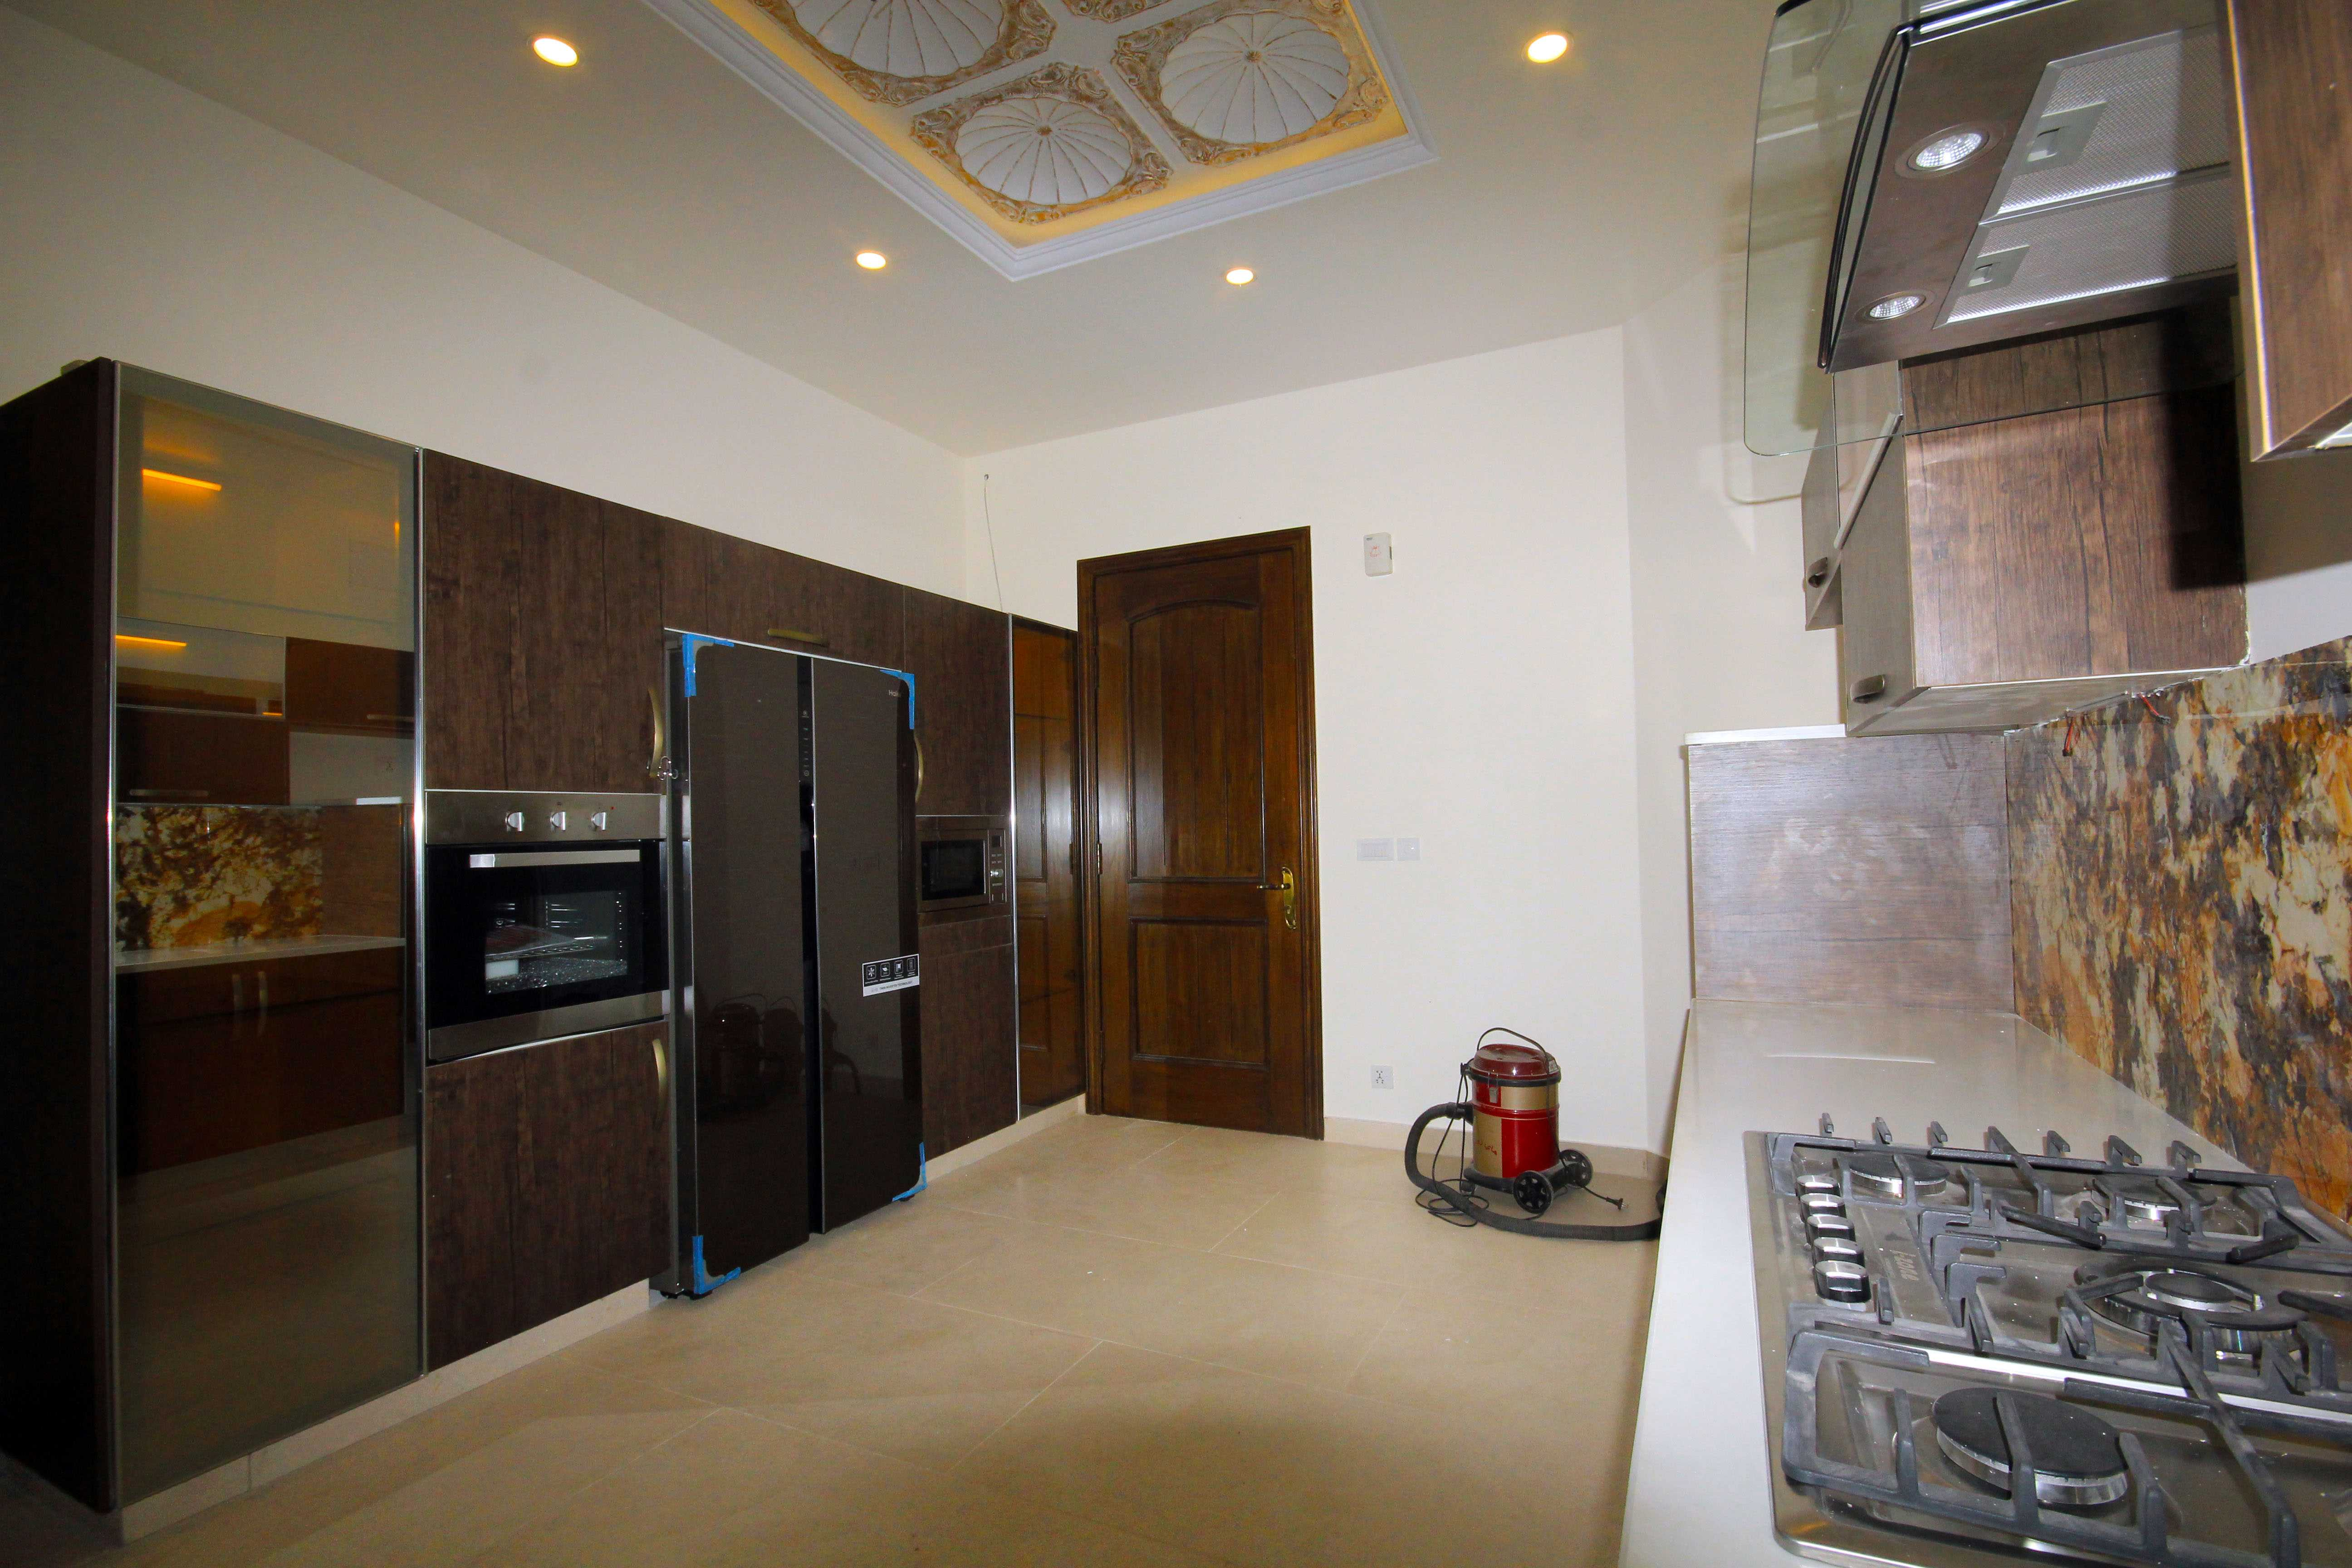 kanal-brand-new-marvelous-bungalow-dha